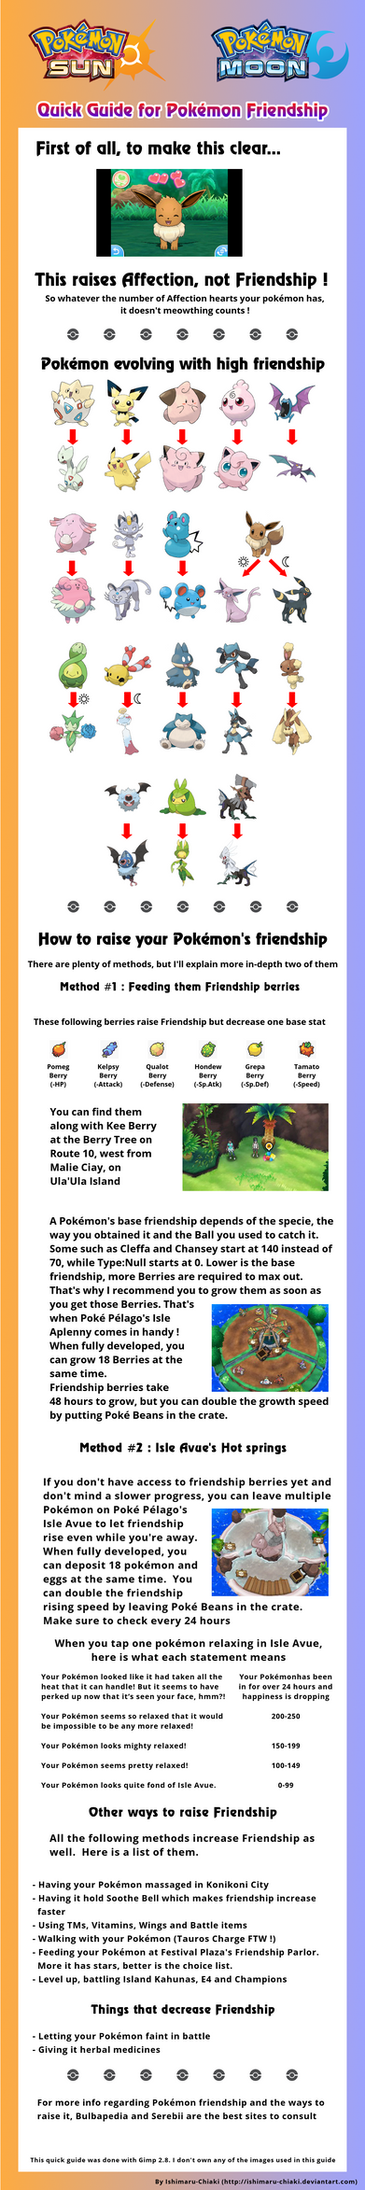 Quick Guide to Pokemon Friendship in SuMo by Ishimaru-Chiaki